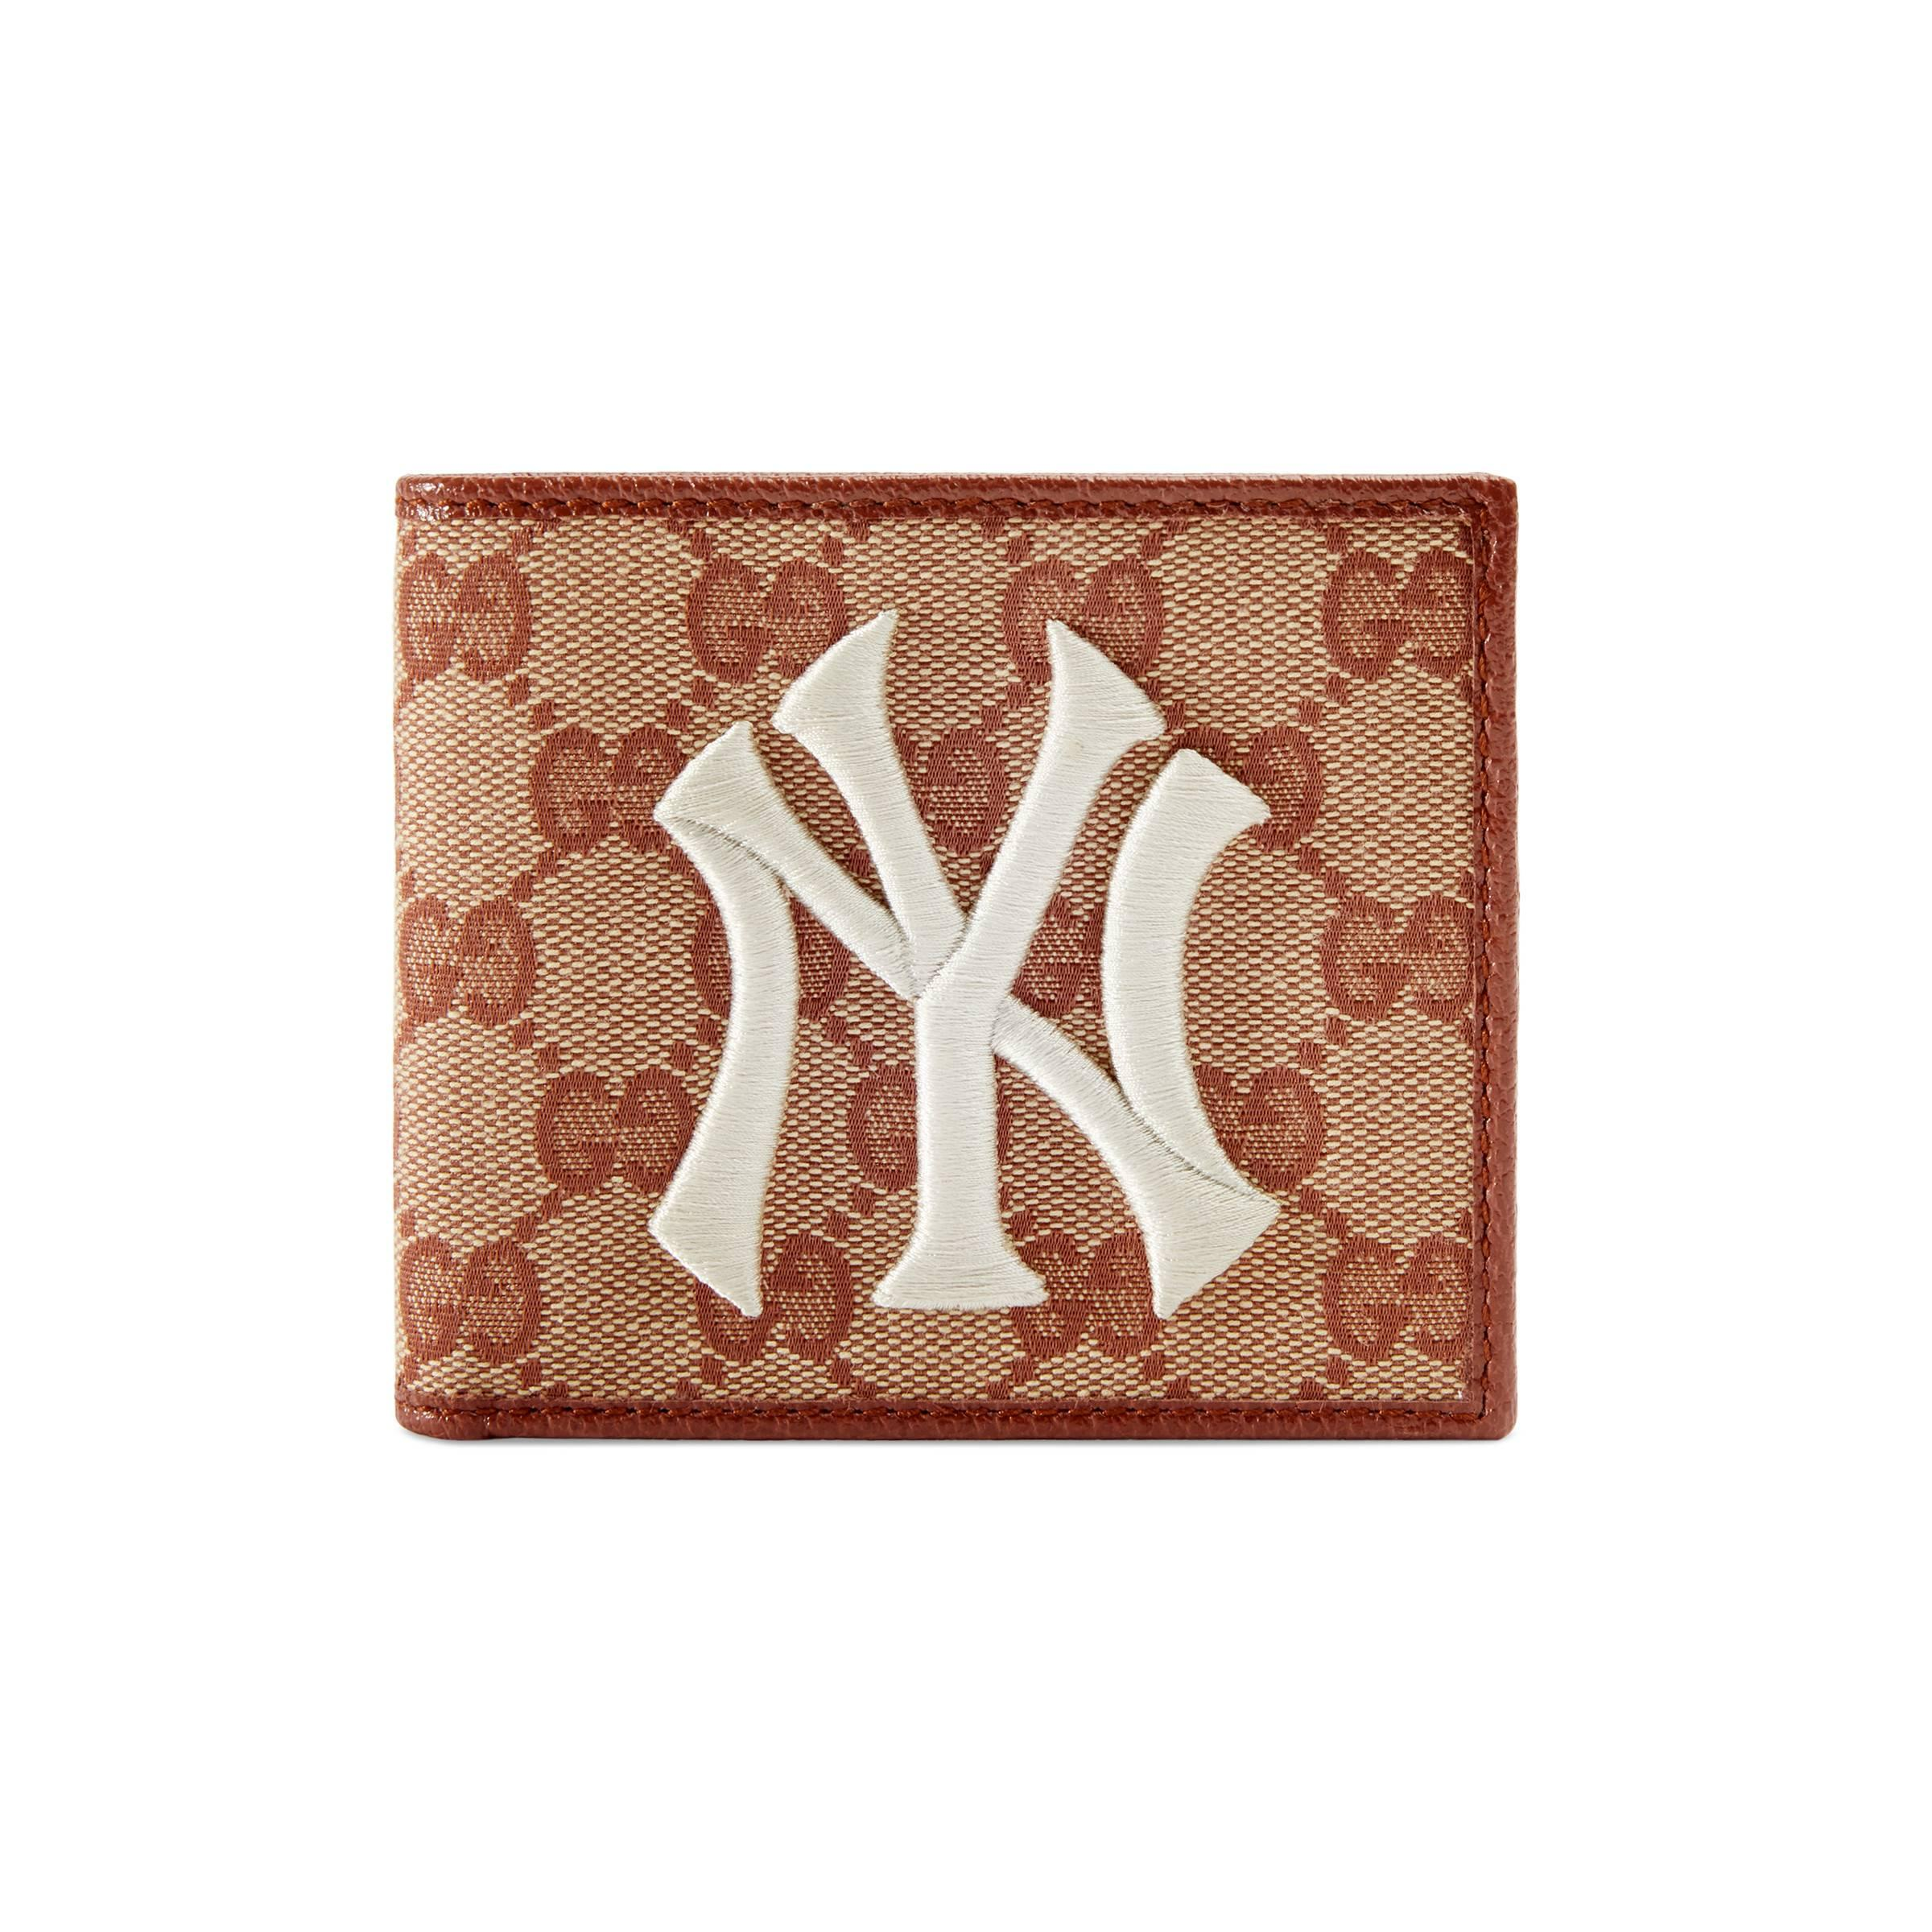 c9db399c3fa Gucci Original GG Canvas Wallet With New York Yankees Patchtm for ...